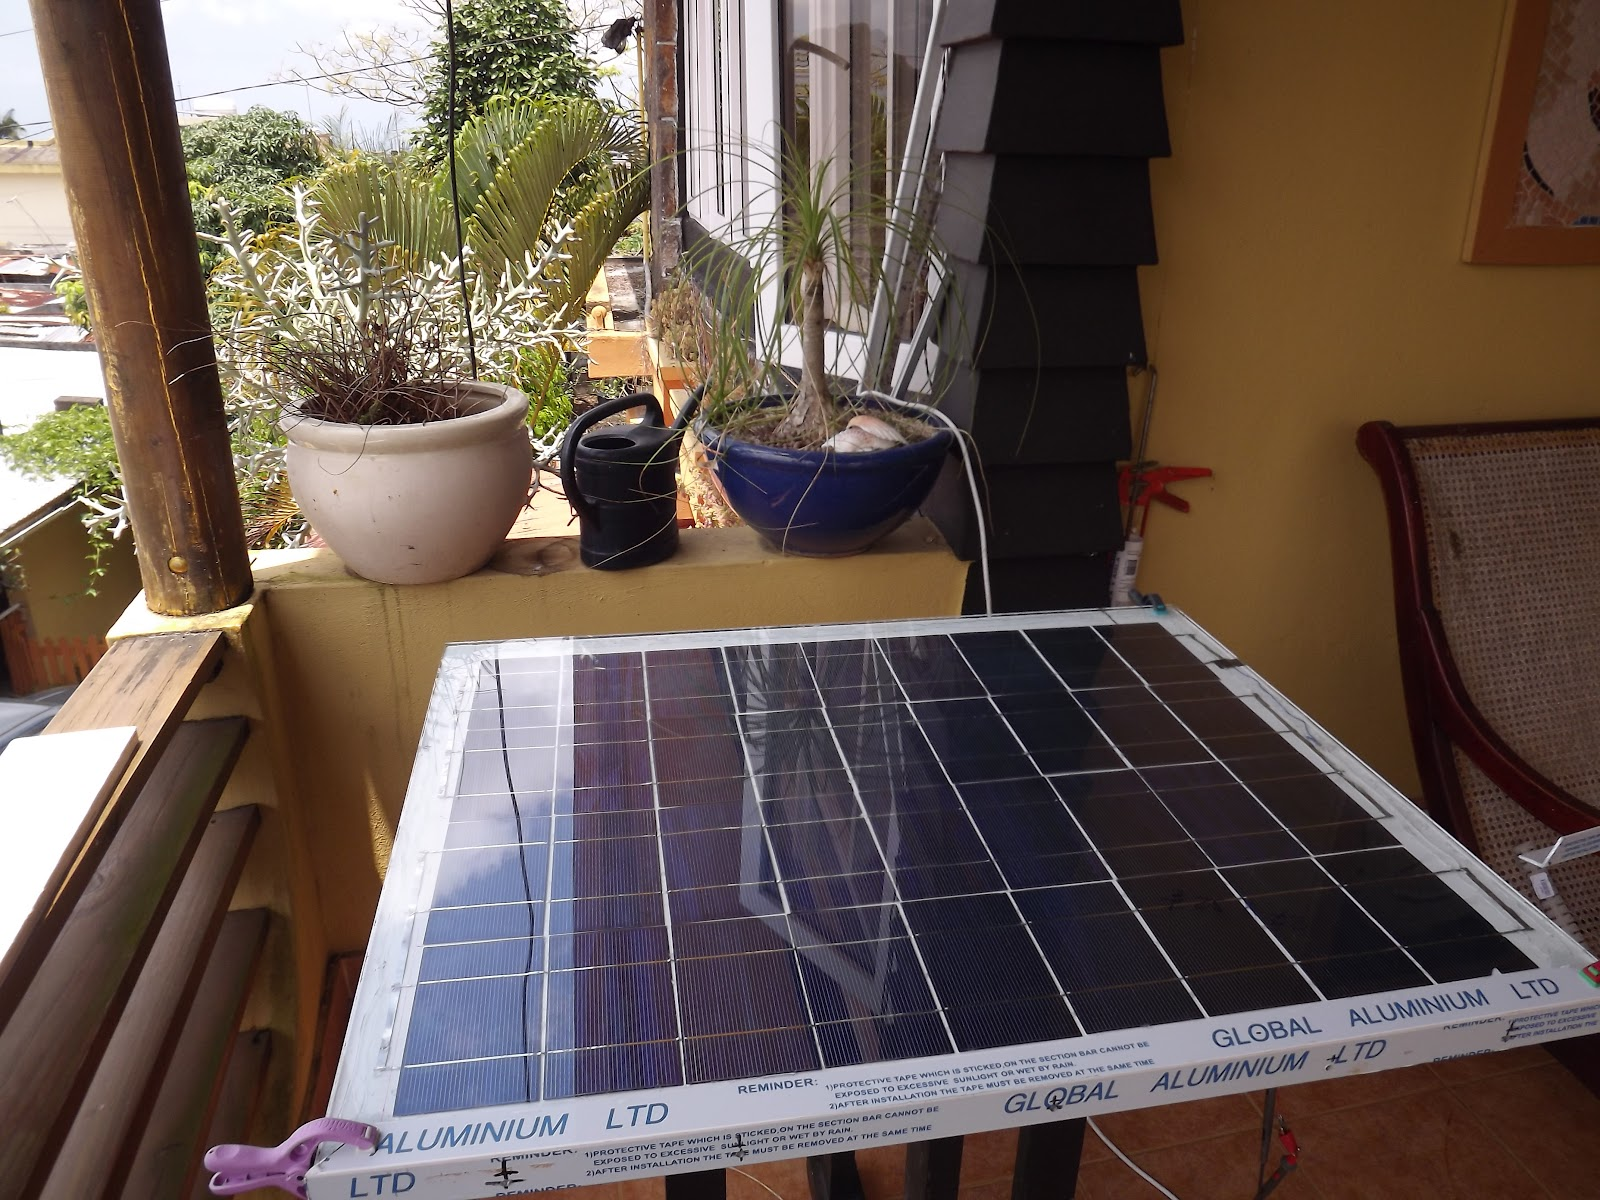 Making And Using Solar Panels To Power Water Pump For Fish Tank Wiring Panel Cable In Series Apply The Flux Solution On Two Lines Of Cell Pen Helps Tabbing Wire Stay Placecut About Twice